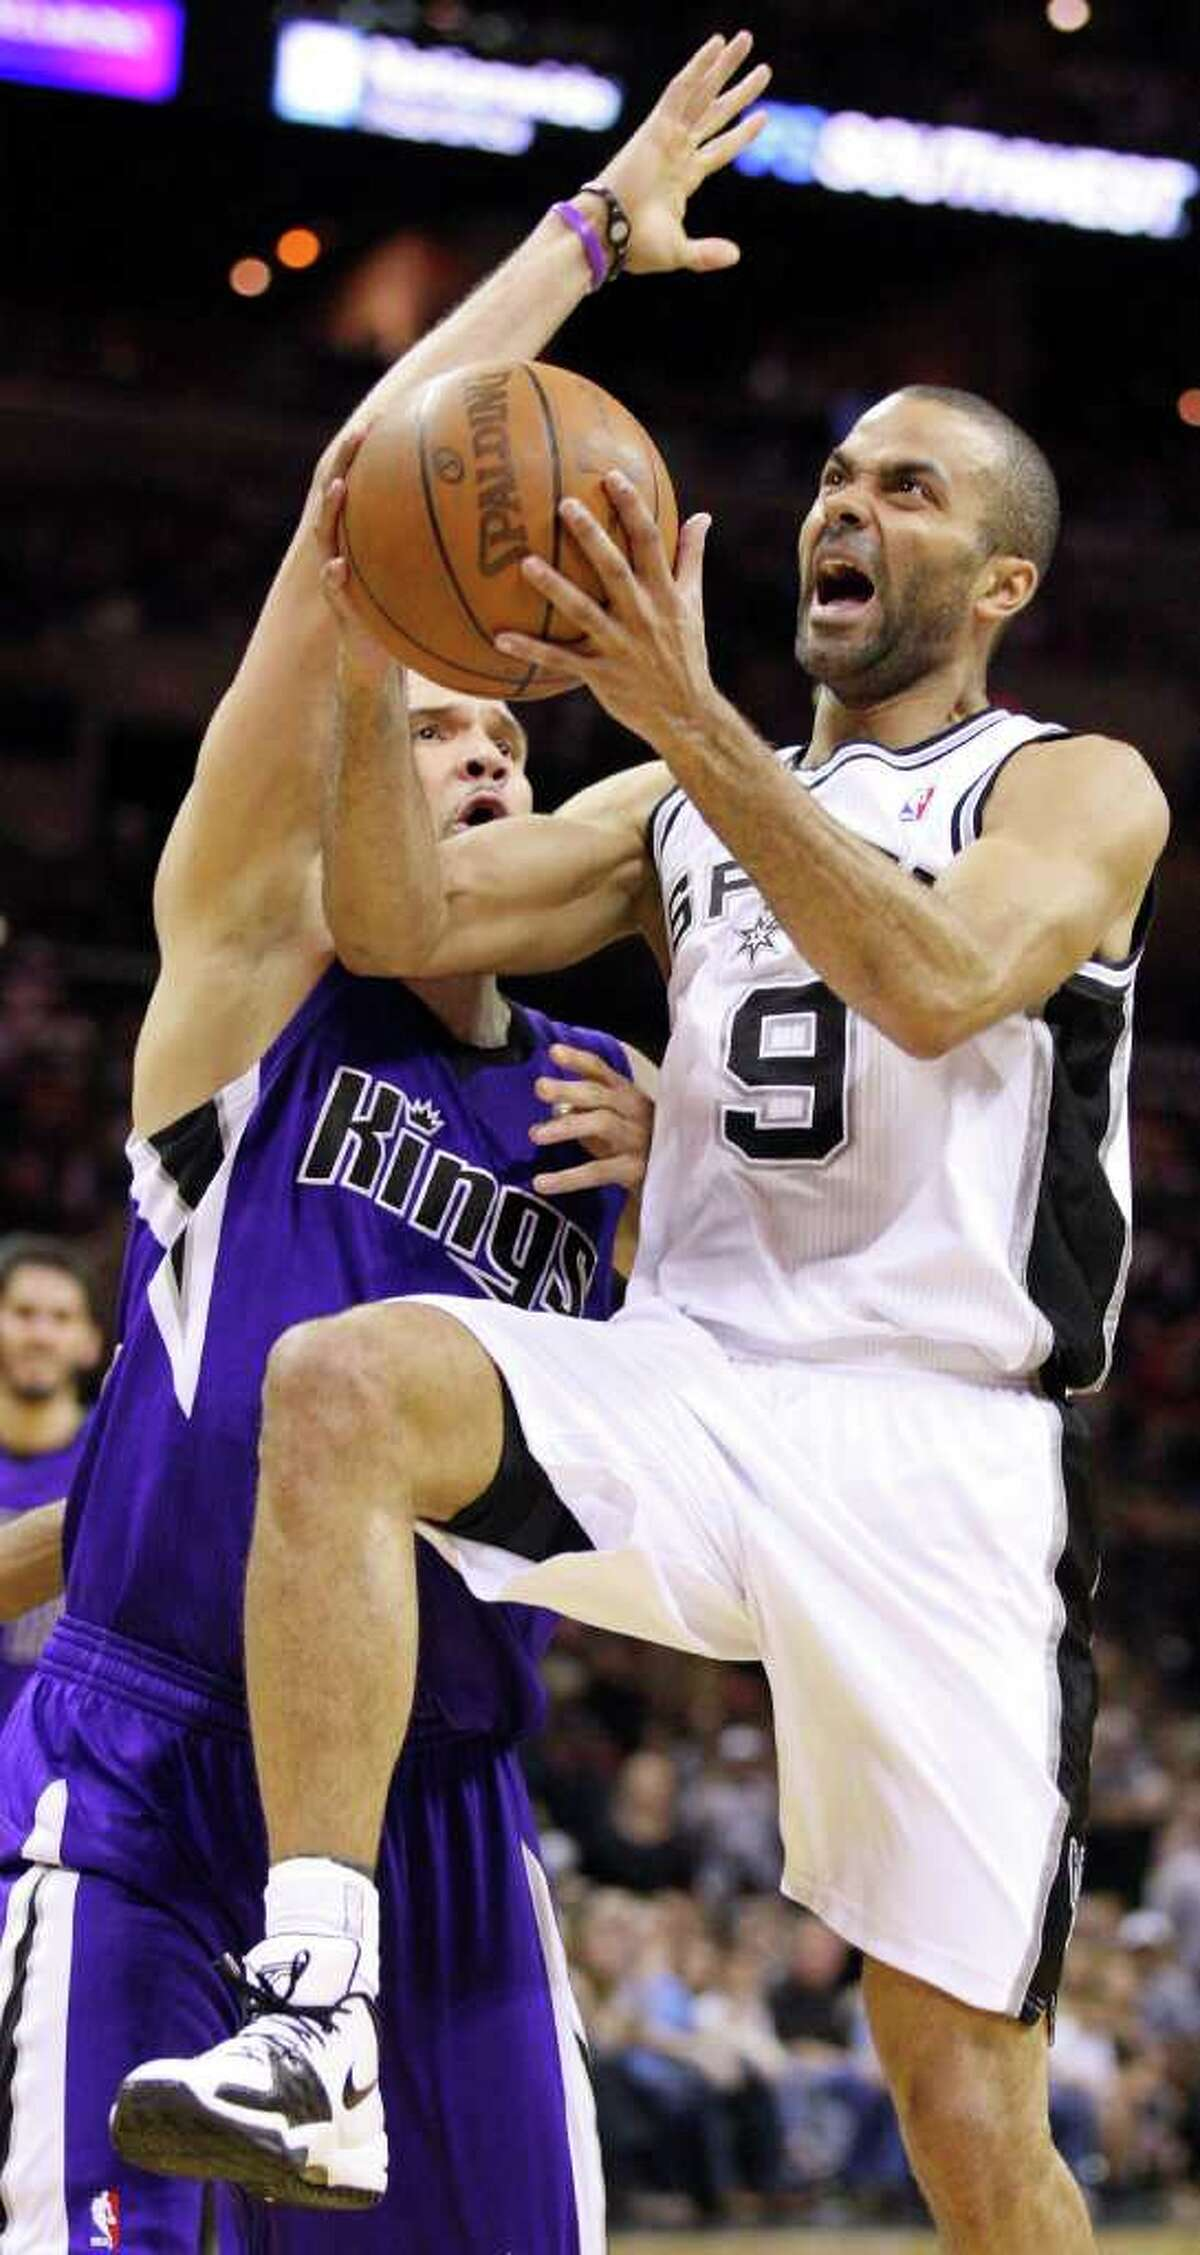 Spurs' Tony Parker drives to the basket around Kings' Francisco Garcia during second half action Friday March 11, 2011 at the AT&T Center. The Spurs won 108-103. (PHOTO BY EDWARD A. ORNELAS/eaornelas@express-news.net)